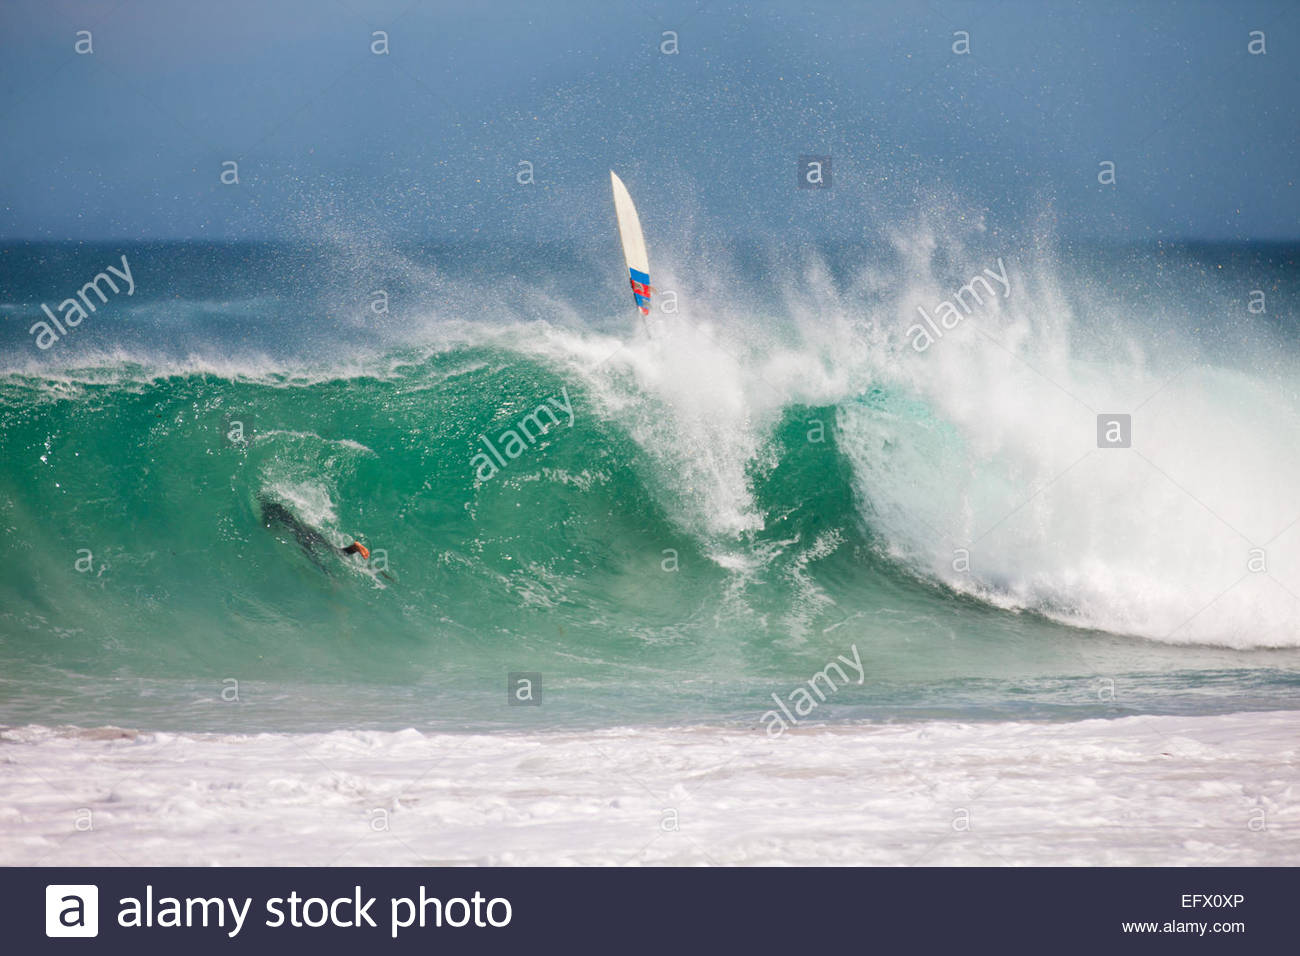 Loose surfboard on large wave - Stock Image